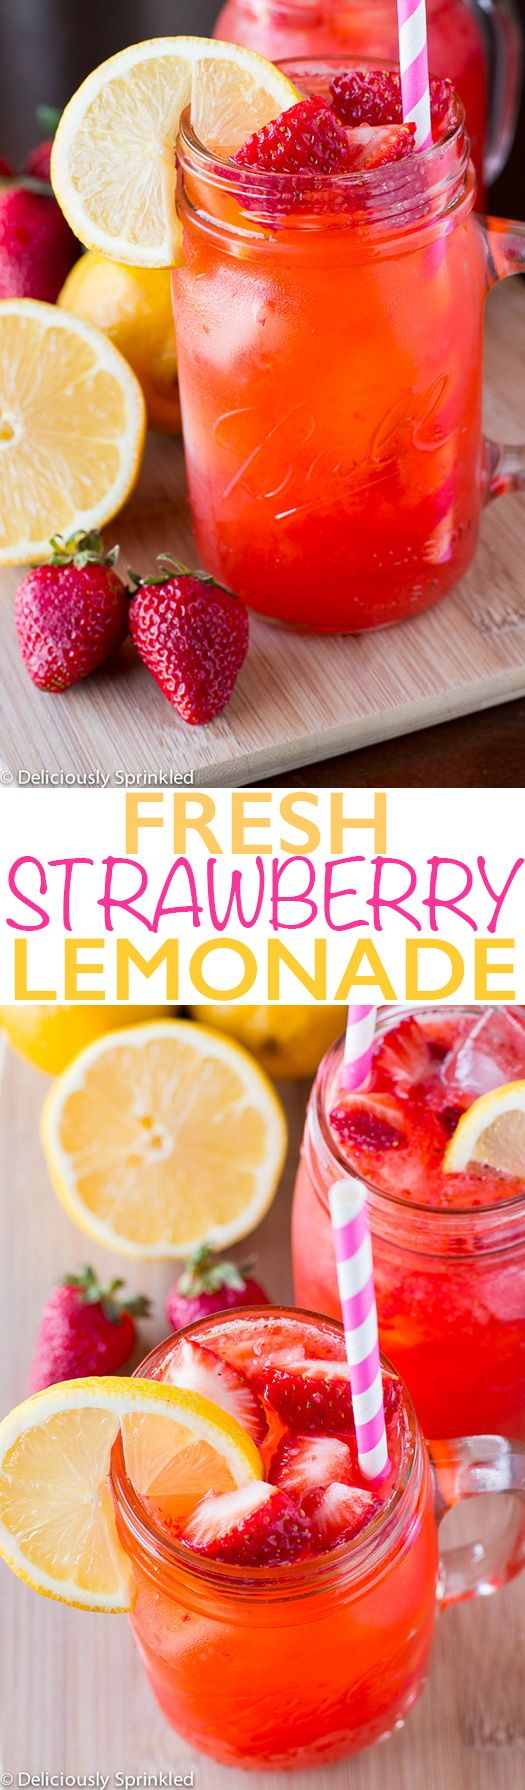 The BEST Fresh Strawberry Lemonade- perfect summer drink! #thirstquencher